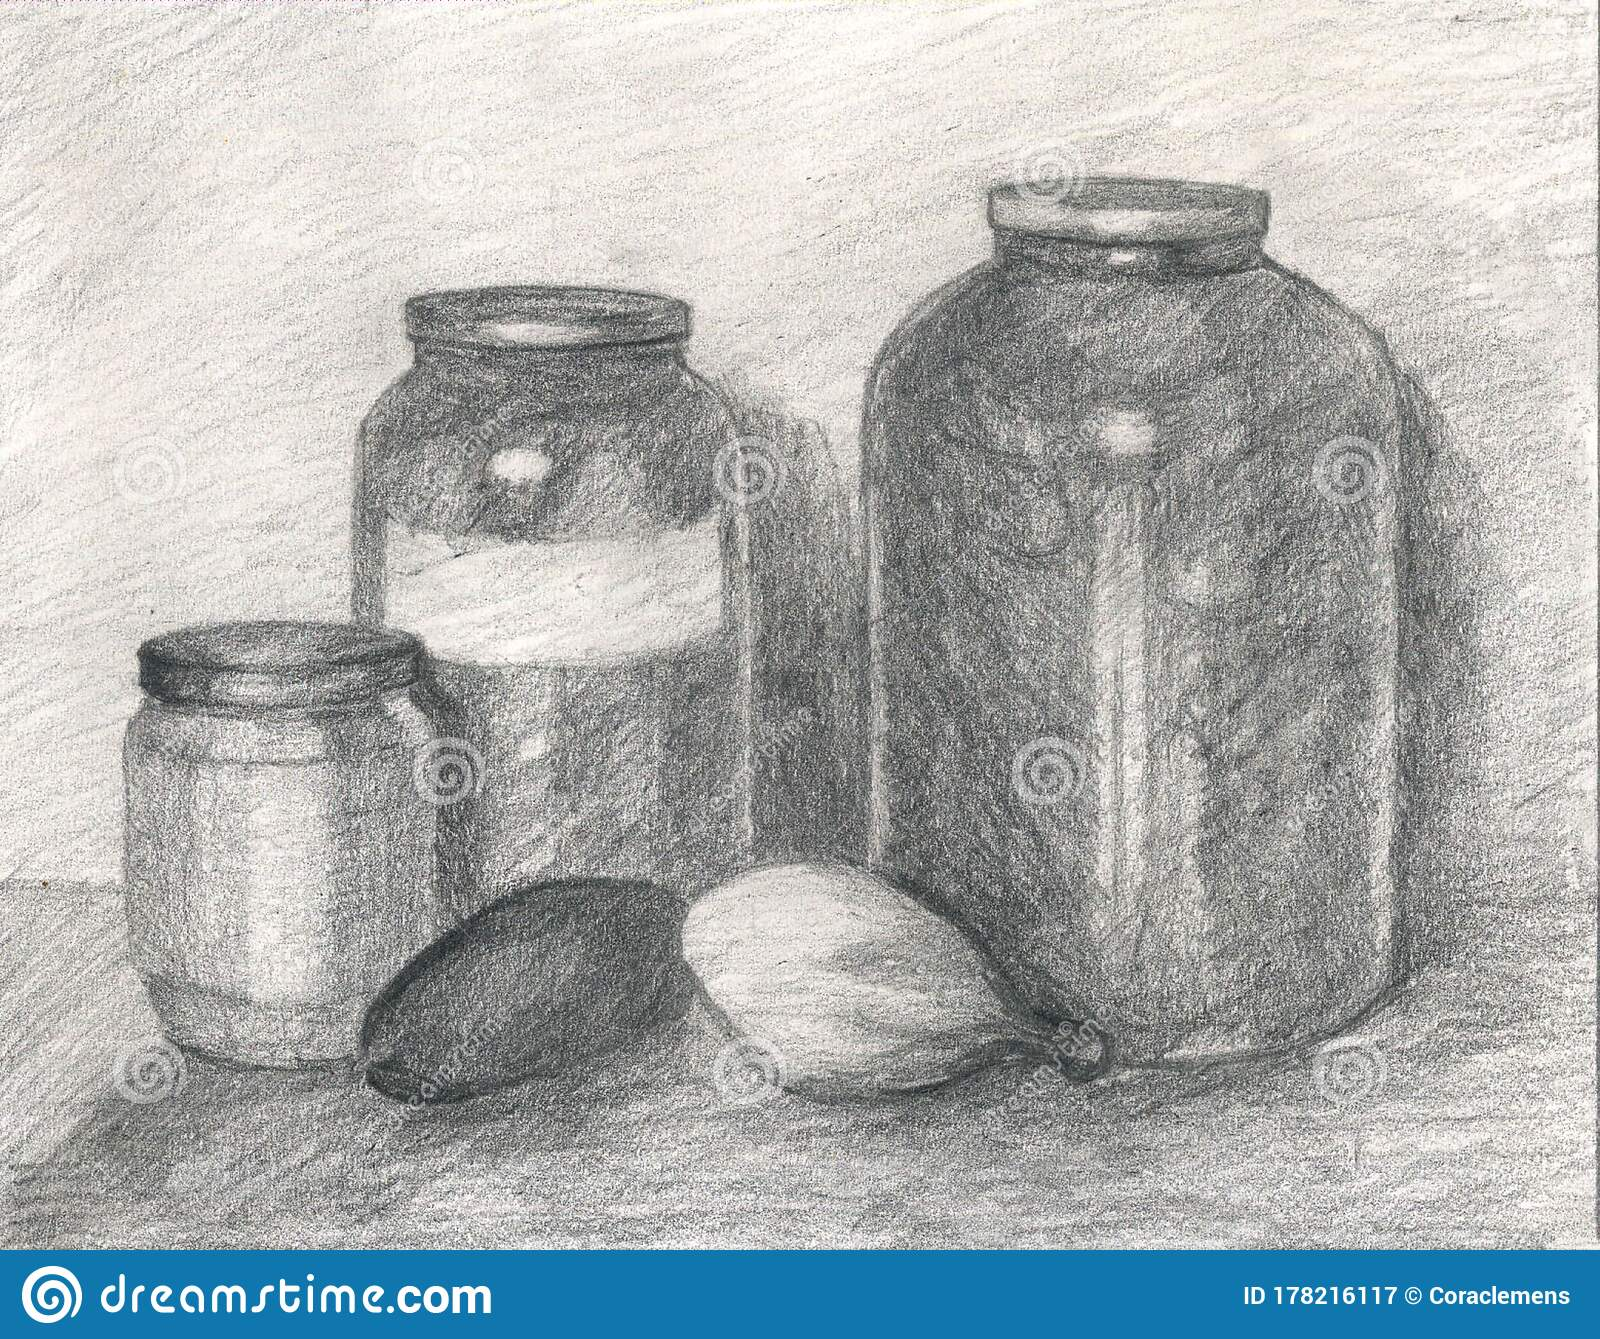 Pencil Drawing Of Jars With Homemade Pickles Stock Illustration Illustration Of Water Graphics 178216117